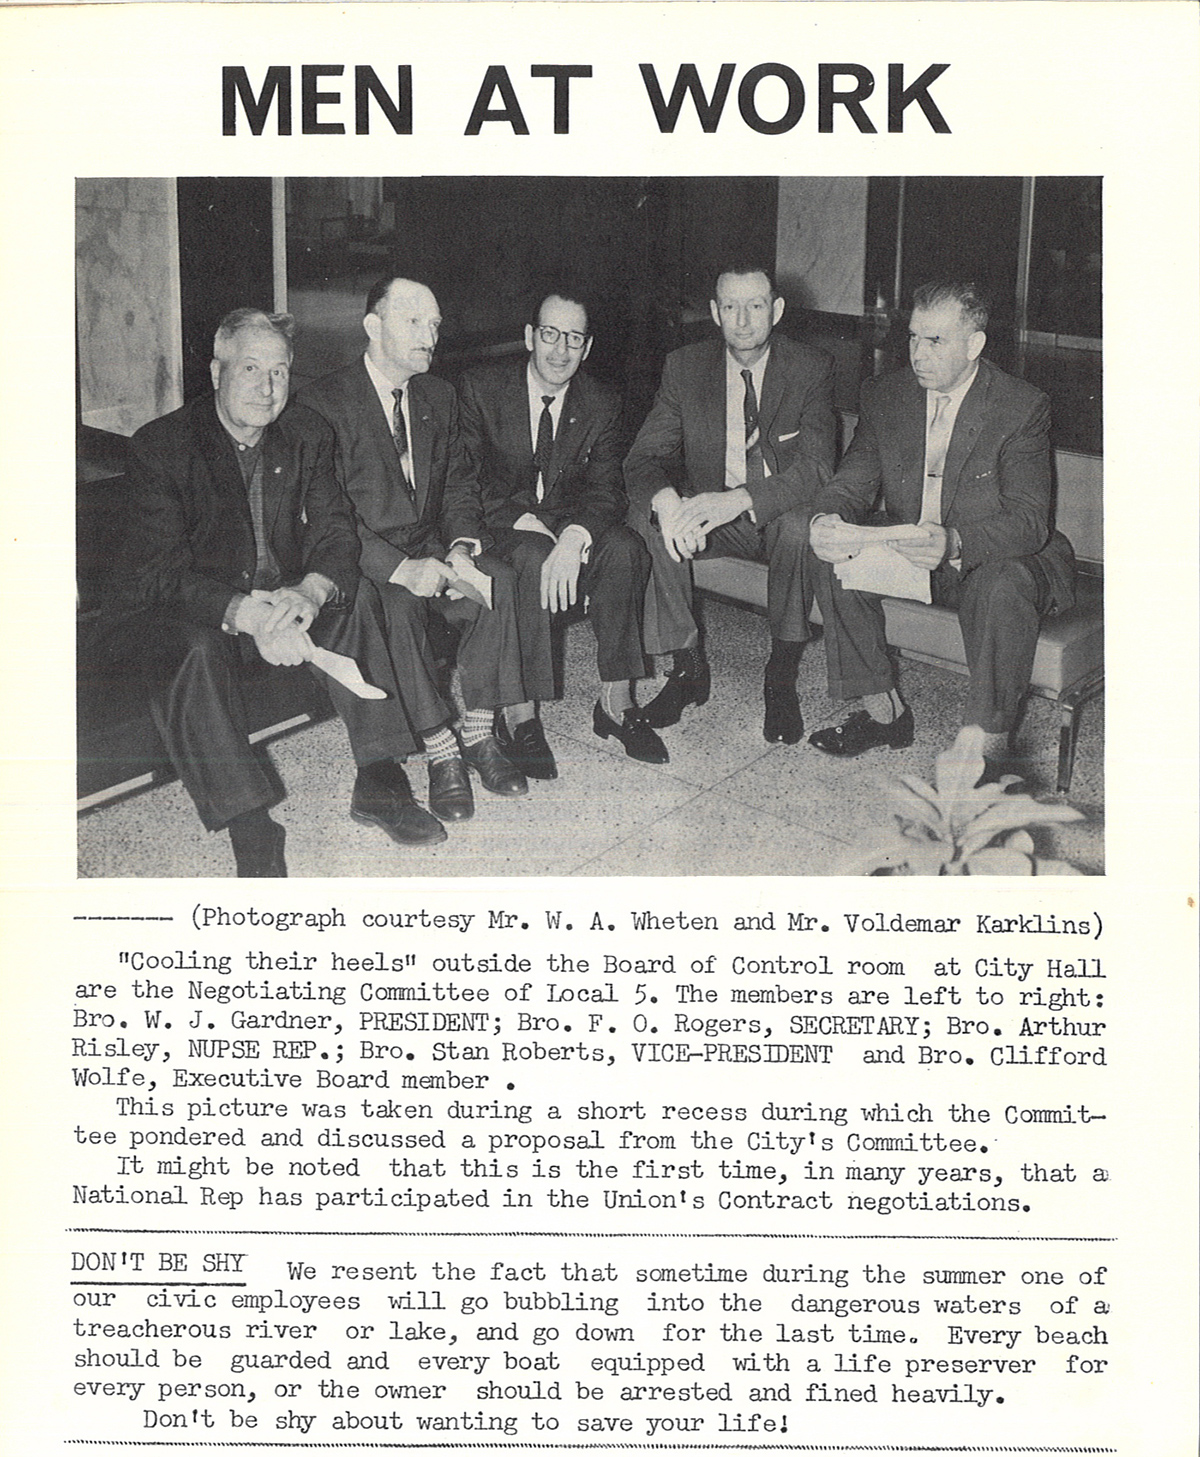 1963 - Local 5's negotiating-committee